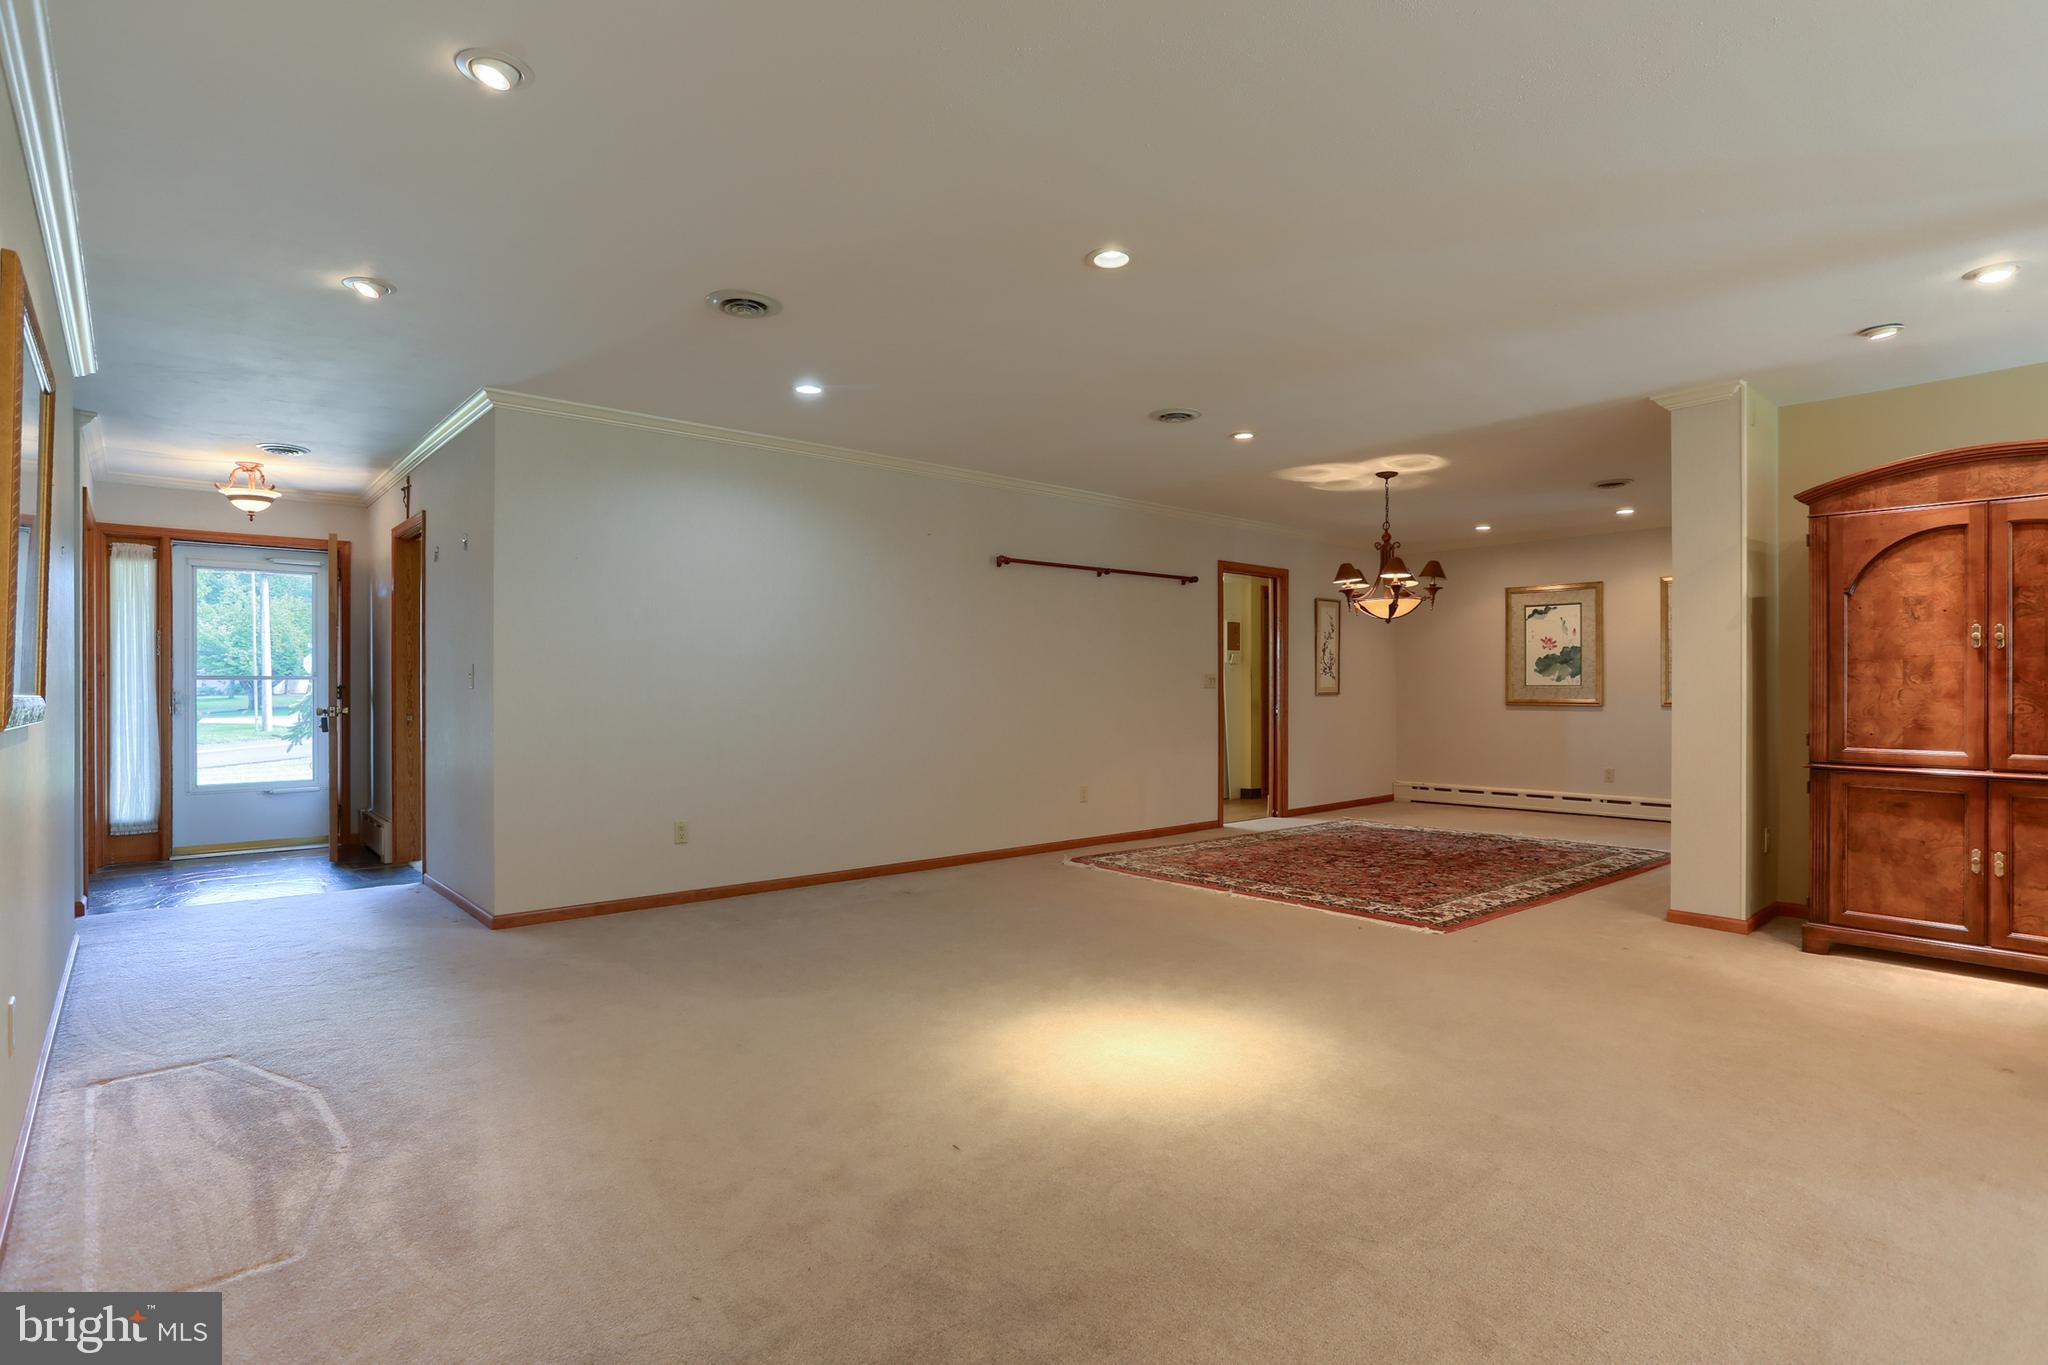 Entry and dining room.